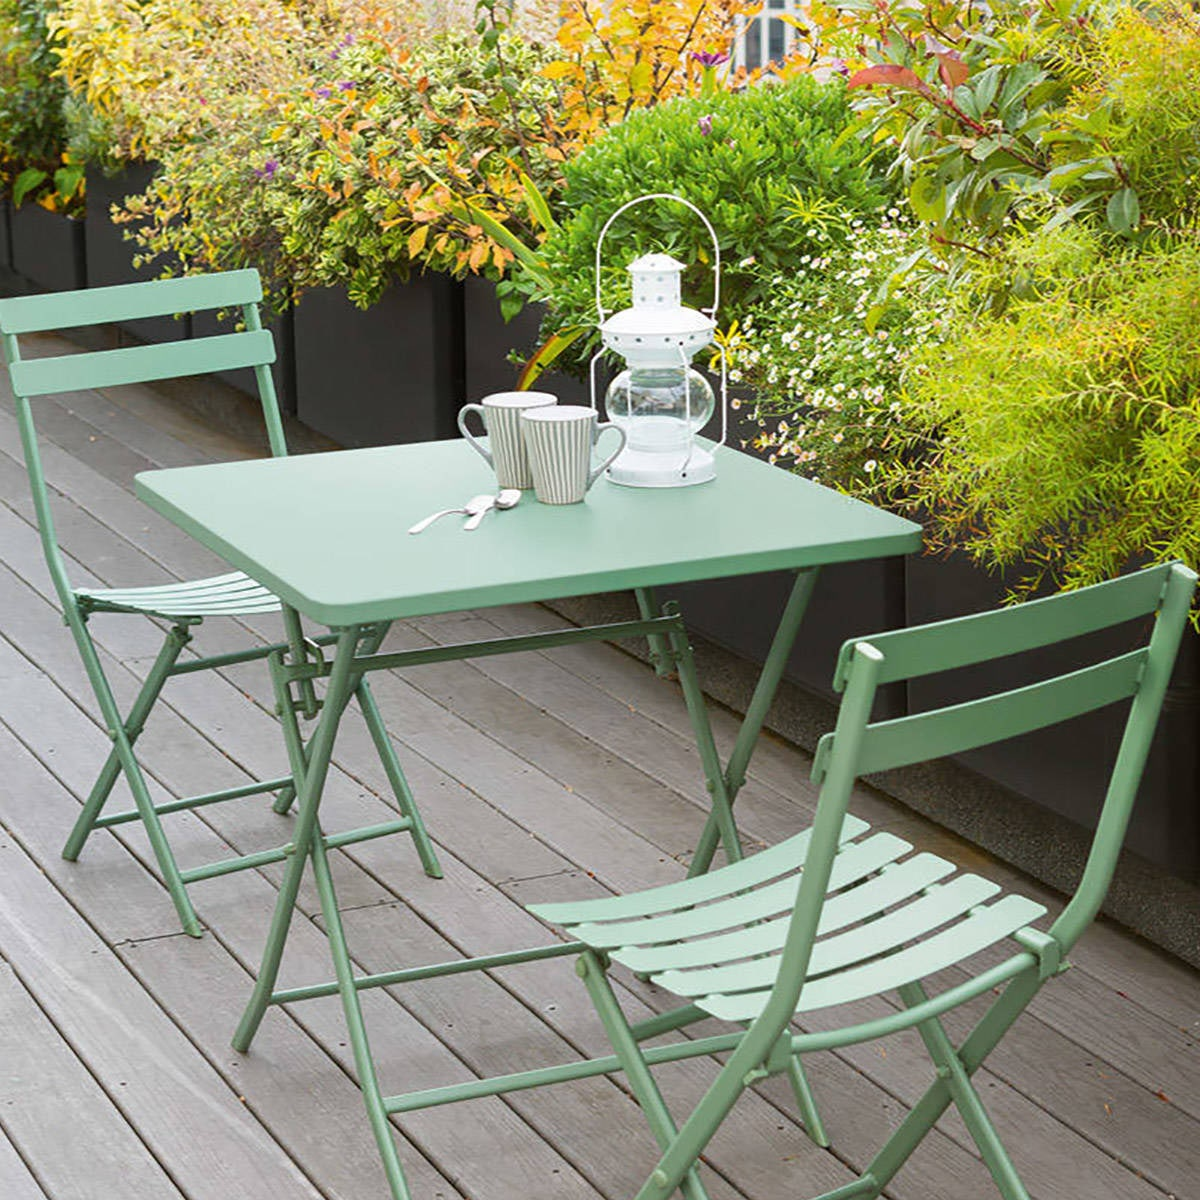 Table Terrasse Pliante Table Pliante Balcon Table De Balcon Pliante 60x53cm Pop